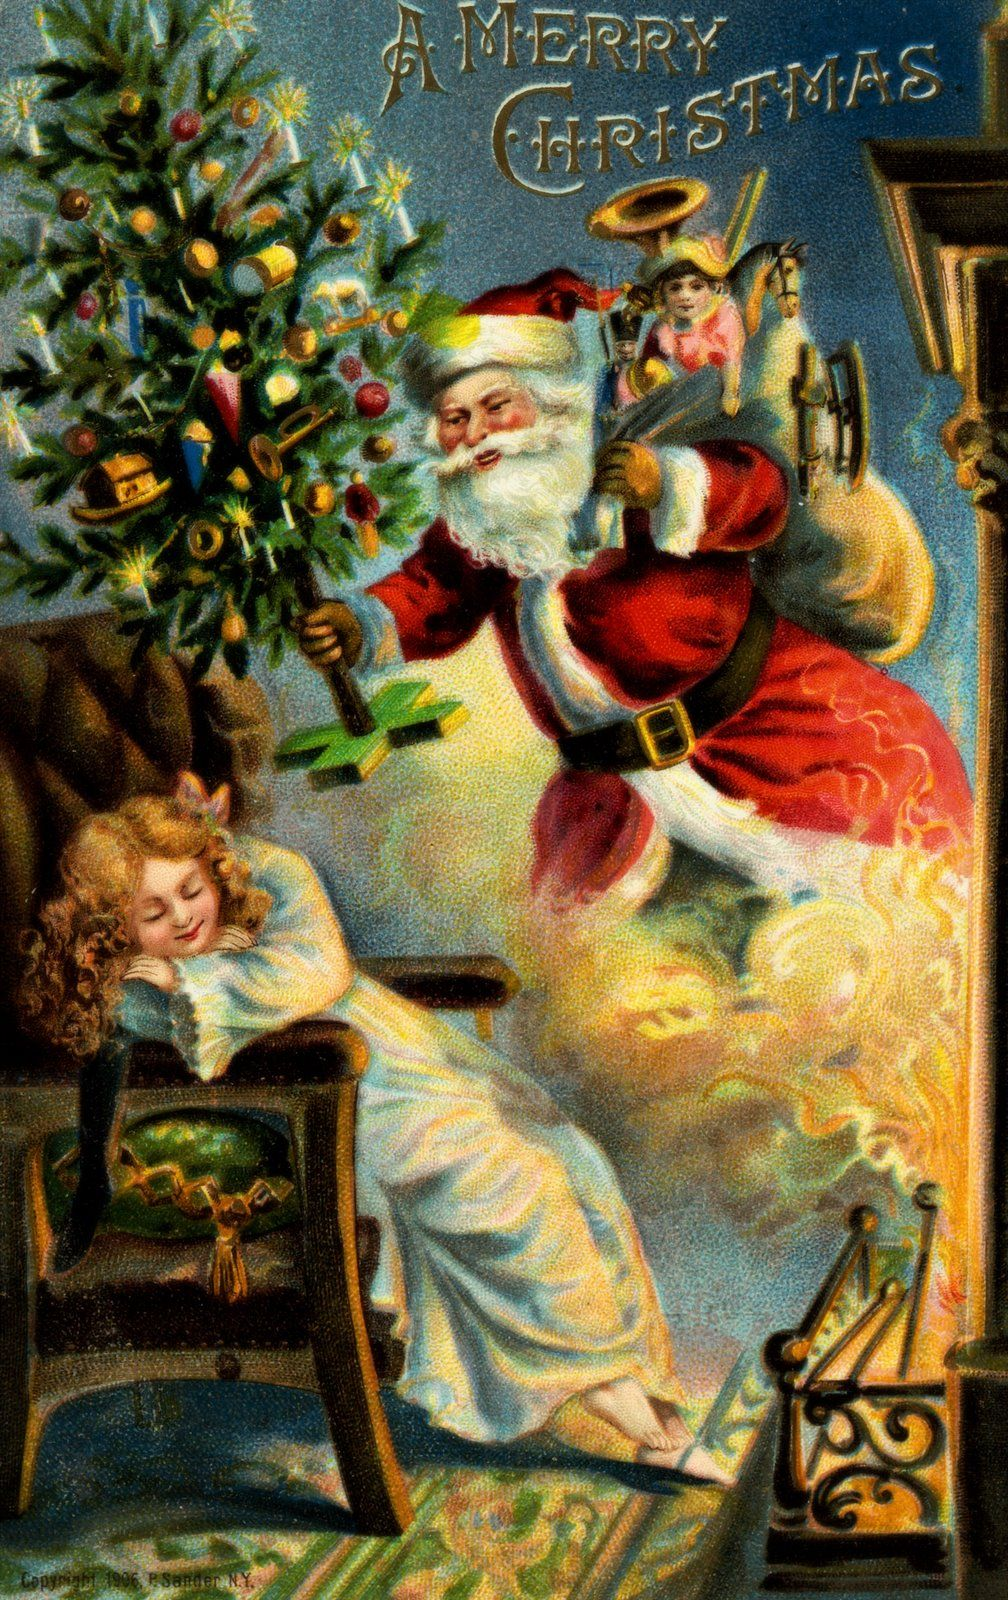 Santa claus pictures google search santa claus is coming to santa claus photo this photo was uploaded by gbtn find other santa claus pictures and photos or upload your own with photobucket free image and video kristyandbryce Choice Image